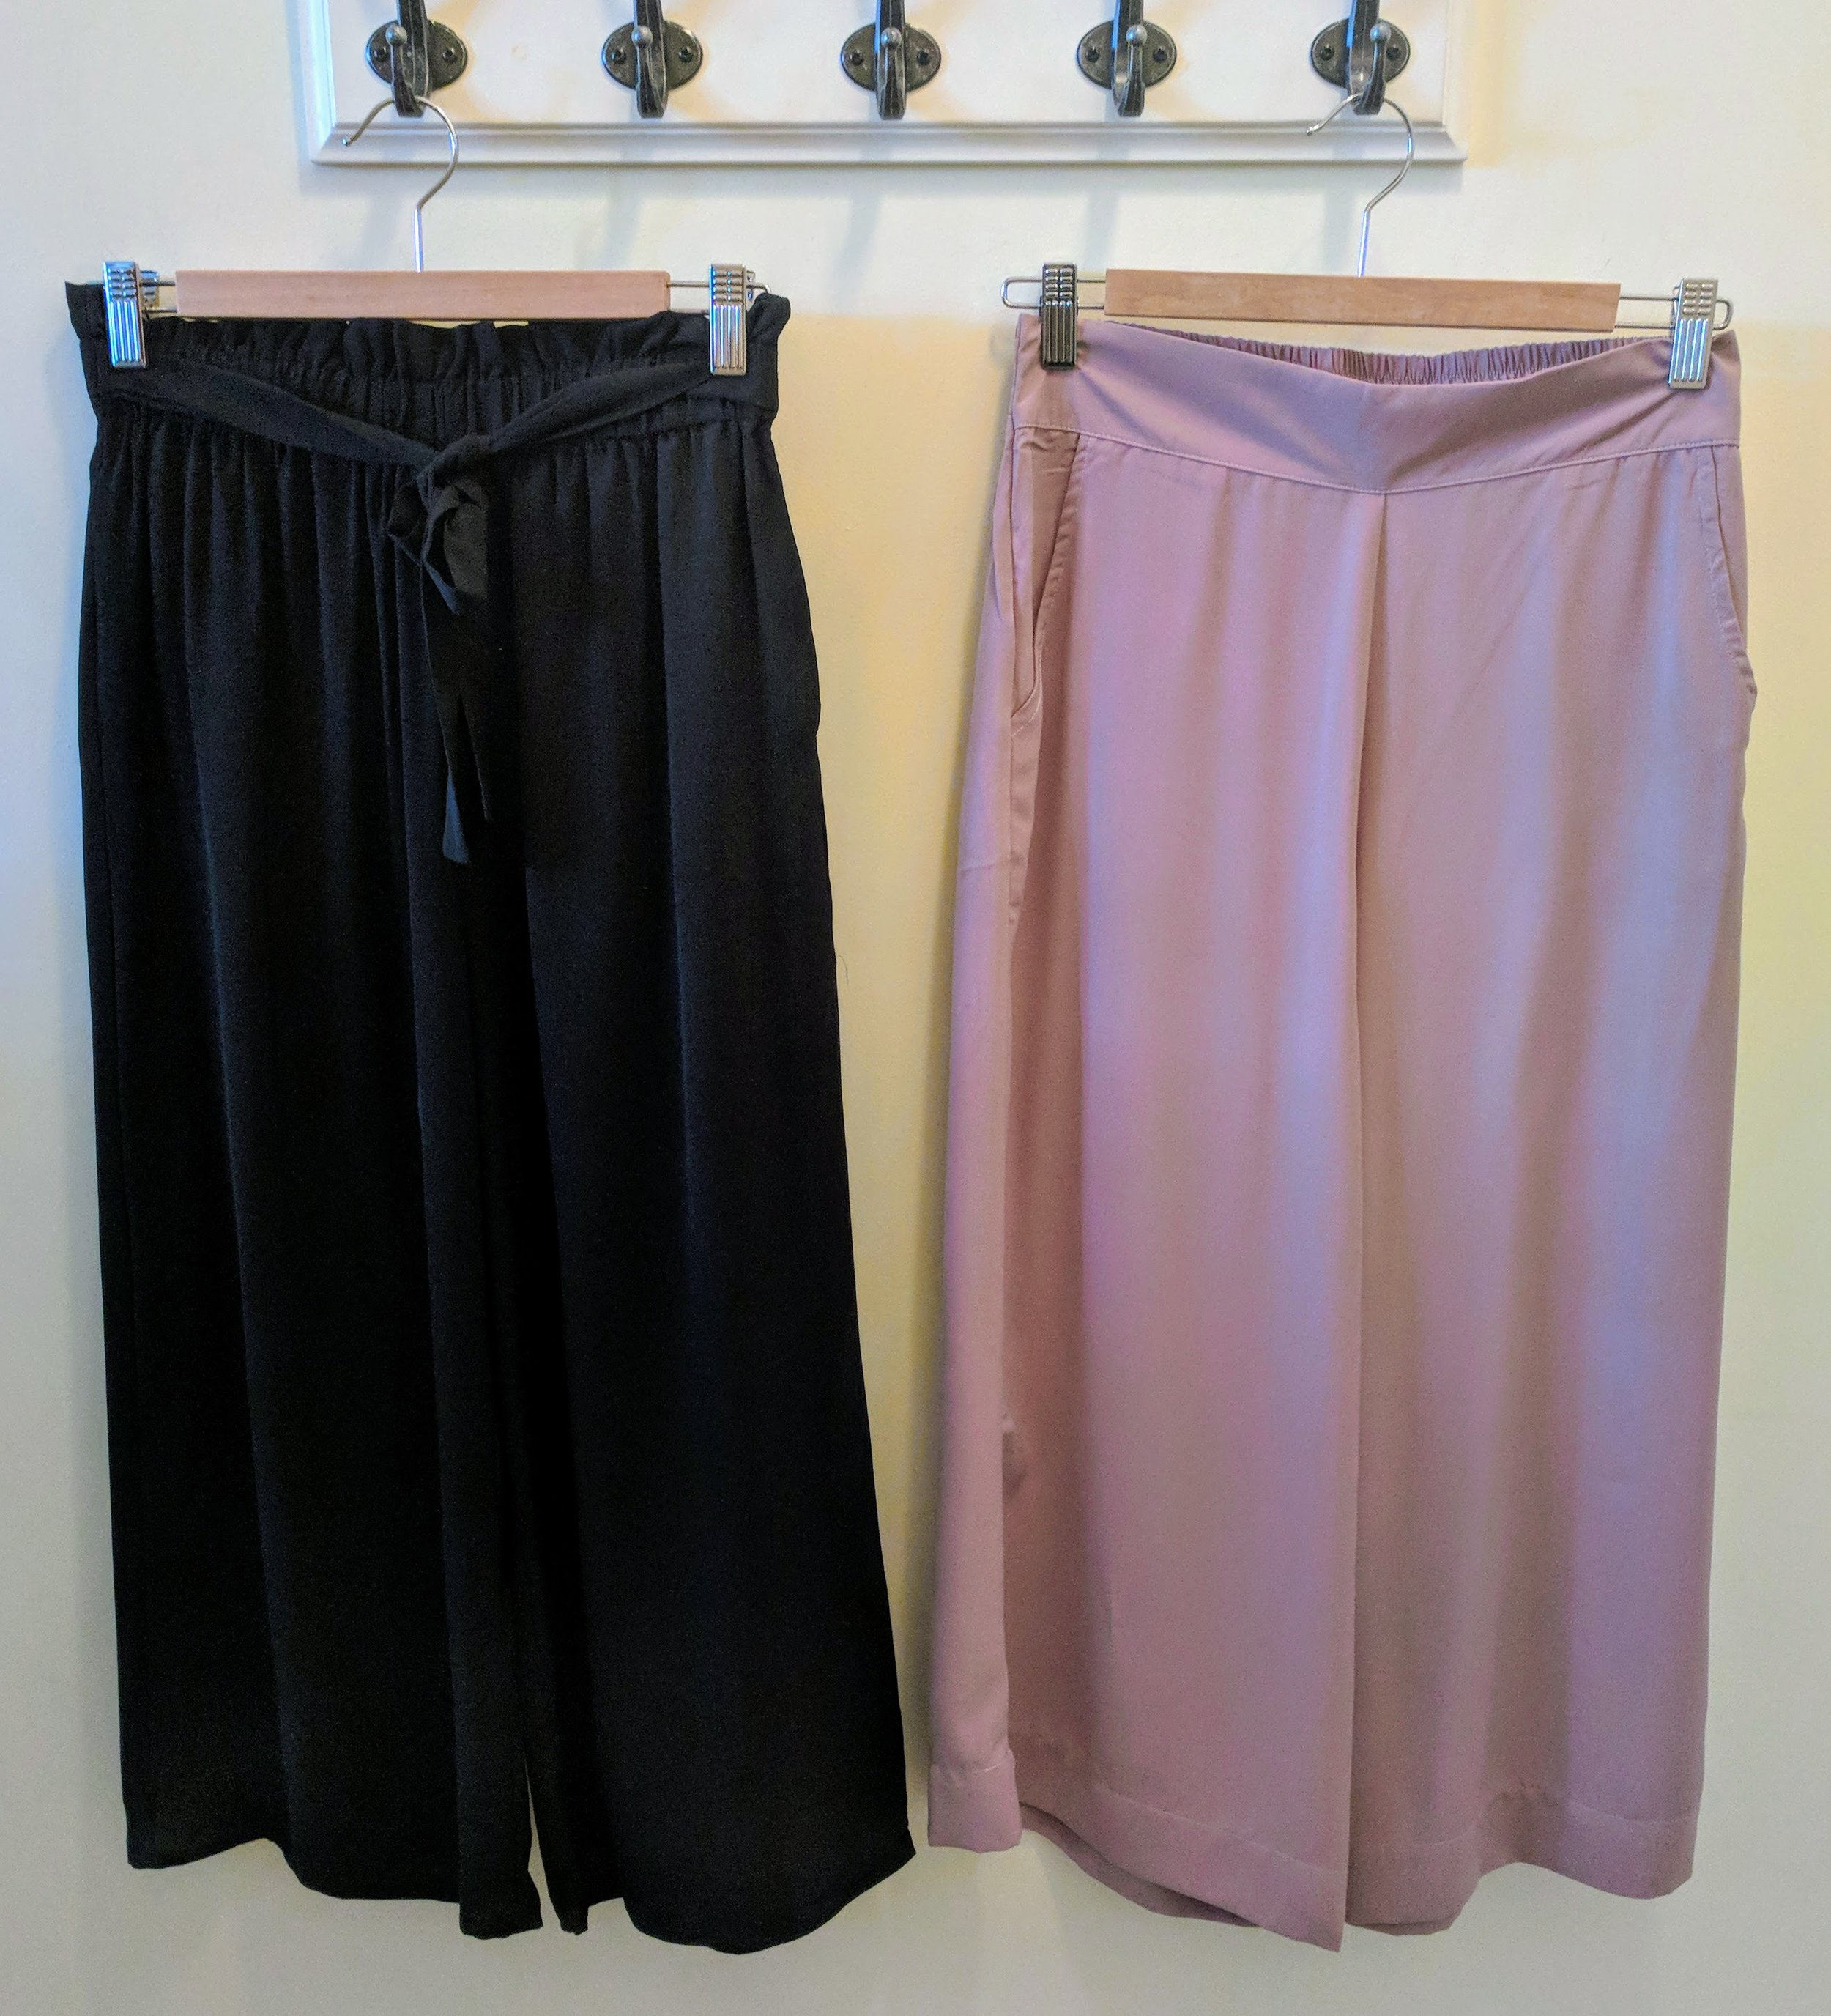 Black and Taupe culotte pants with elastic waistband.